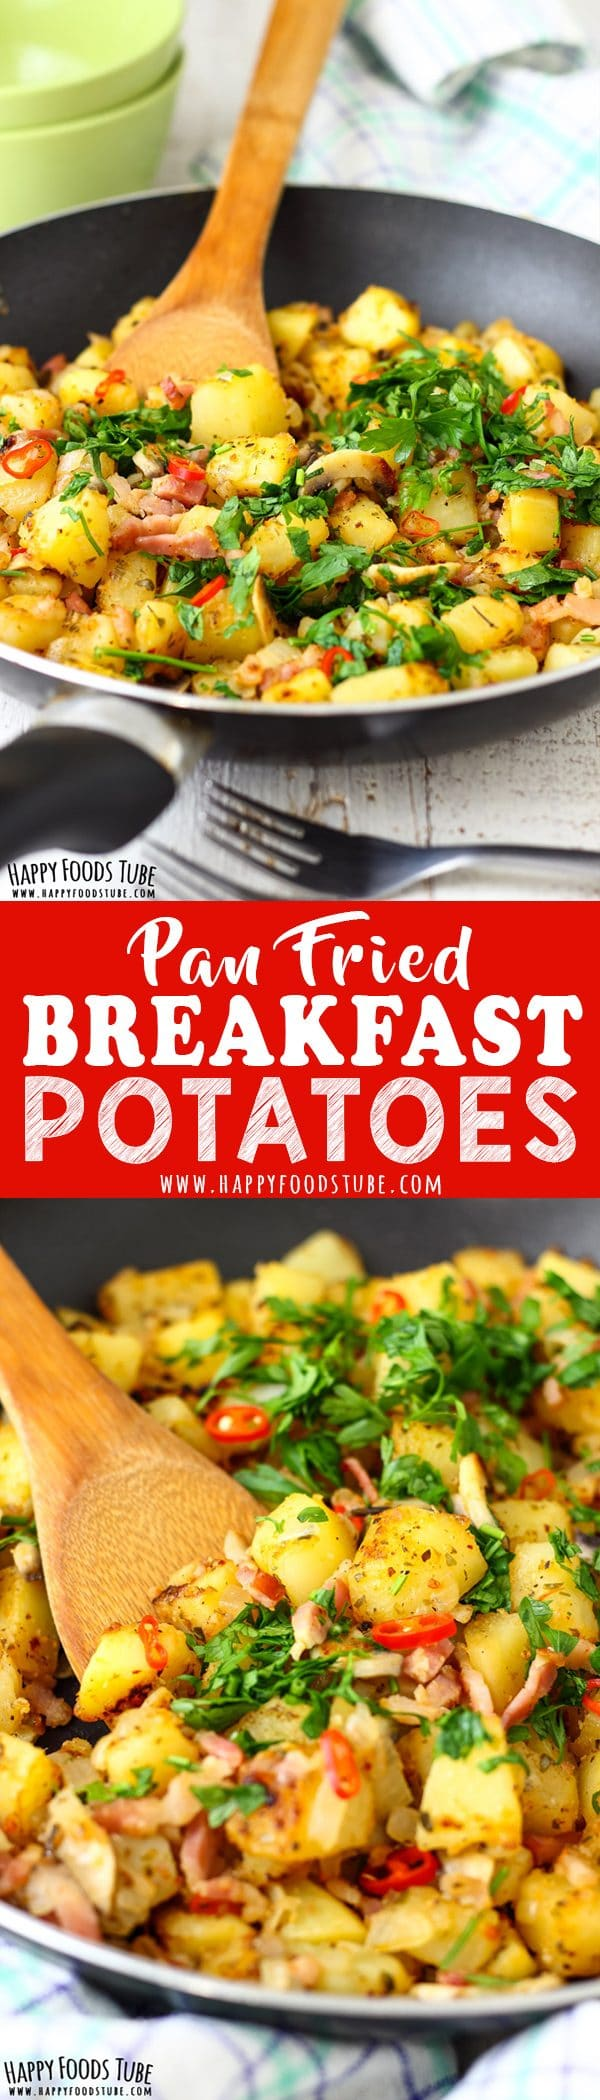 Pan Fried Breakfast Potatoes Recipe Picture